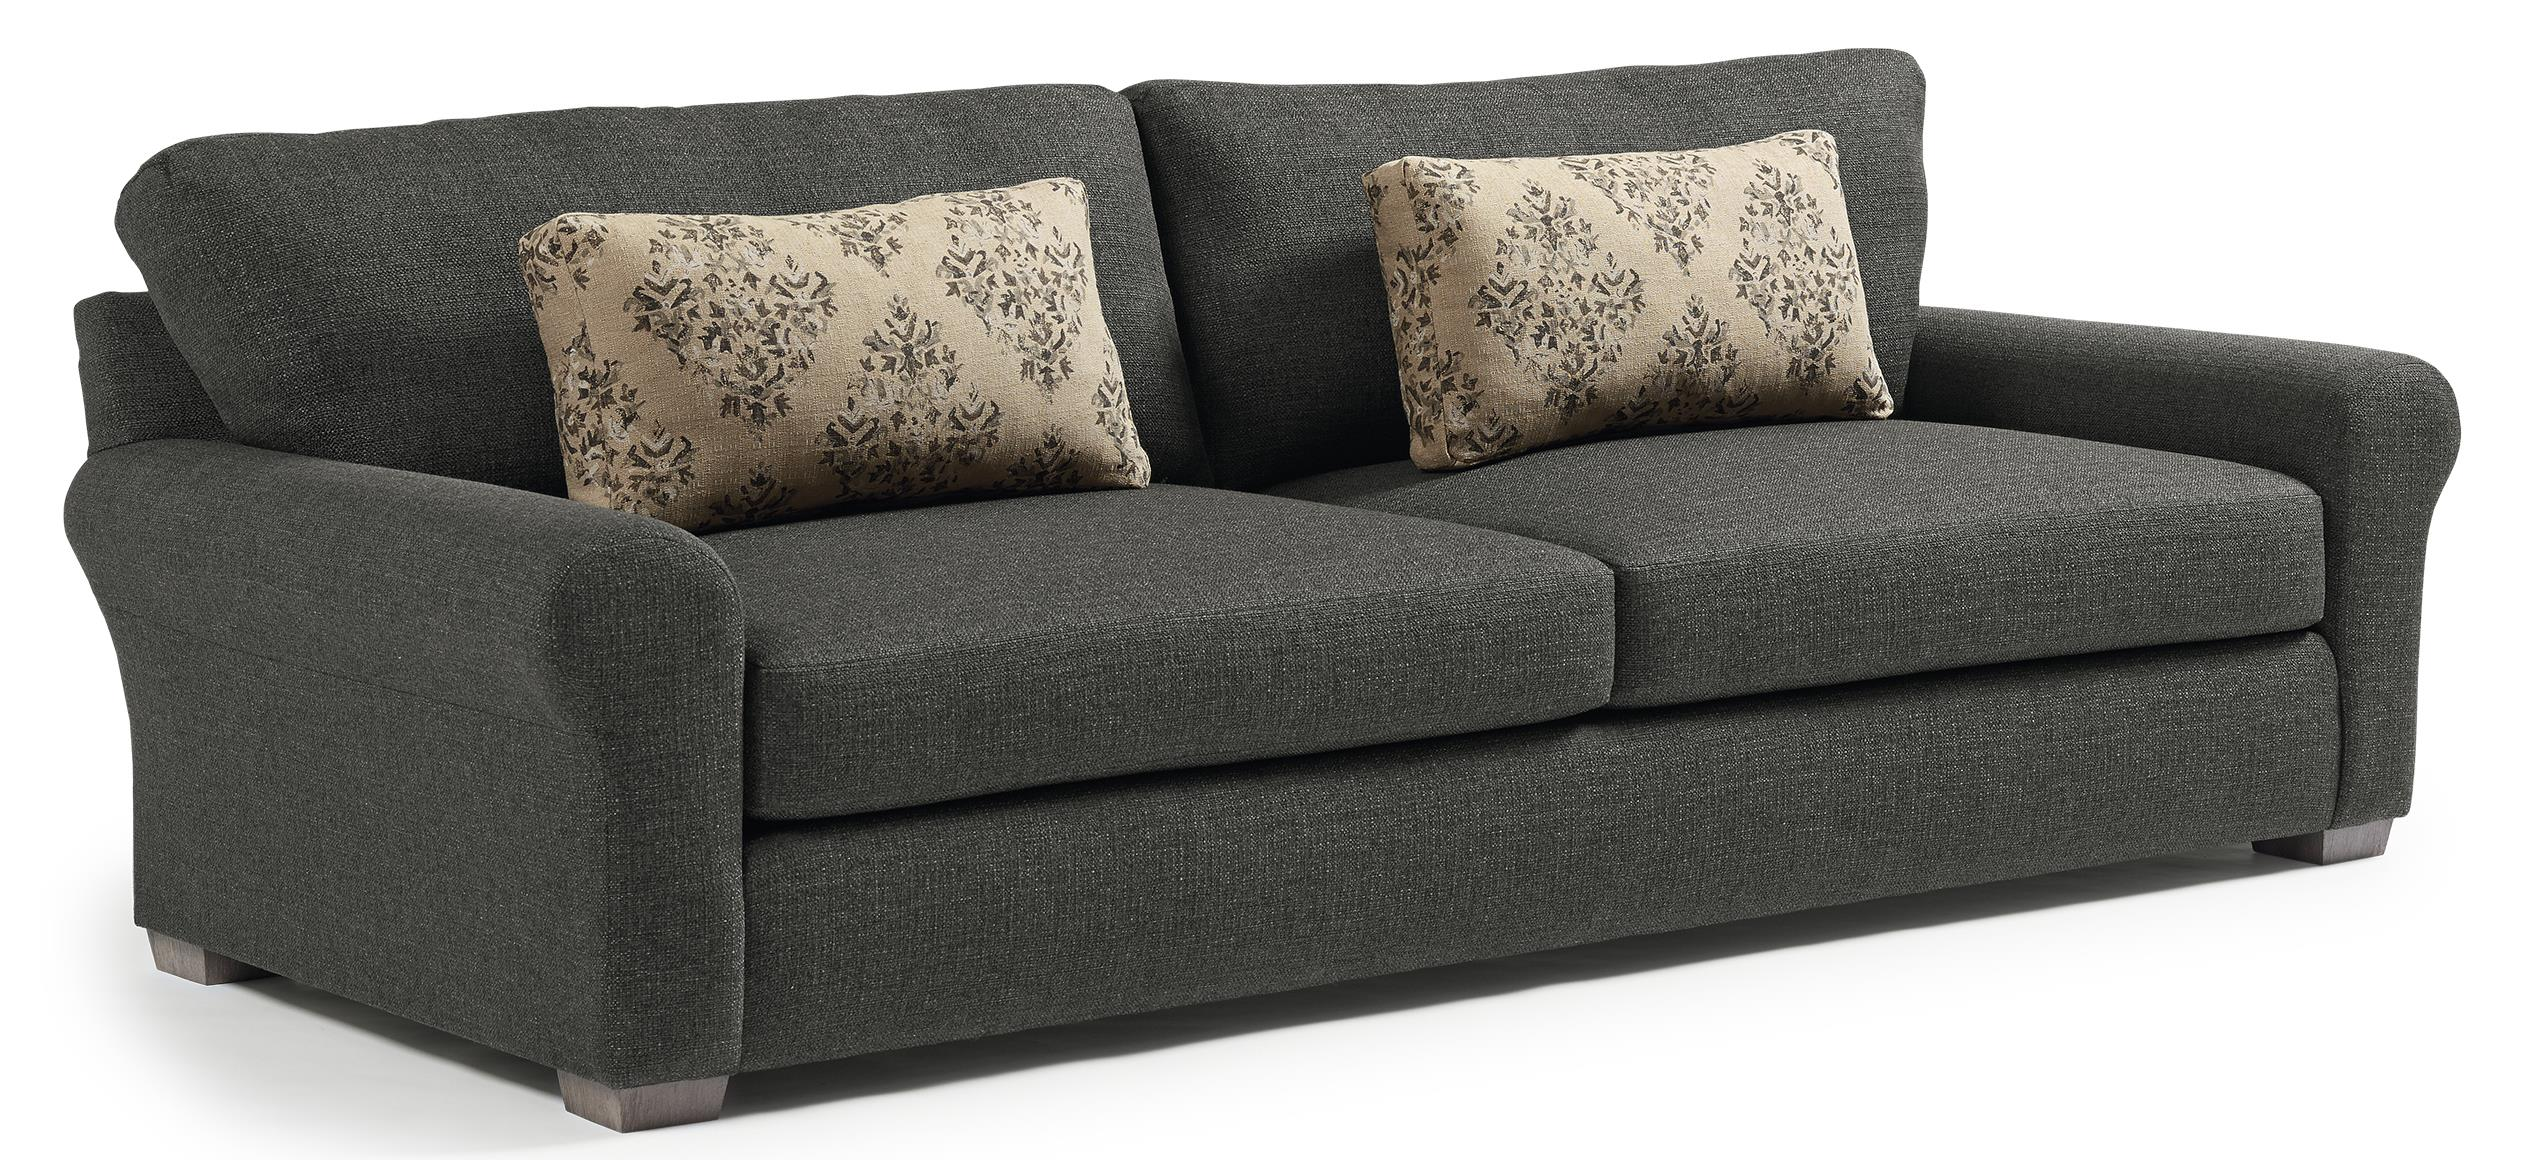 Best home furnishings sophia s69 transitional wide sofa for Wide couches